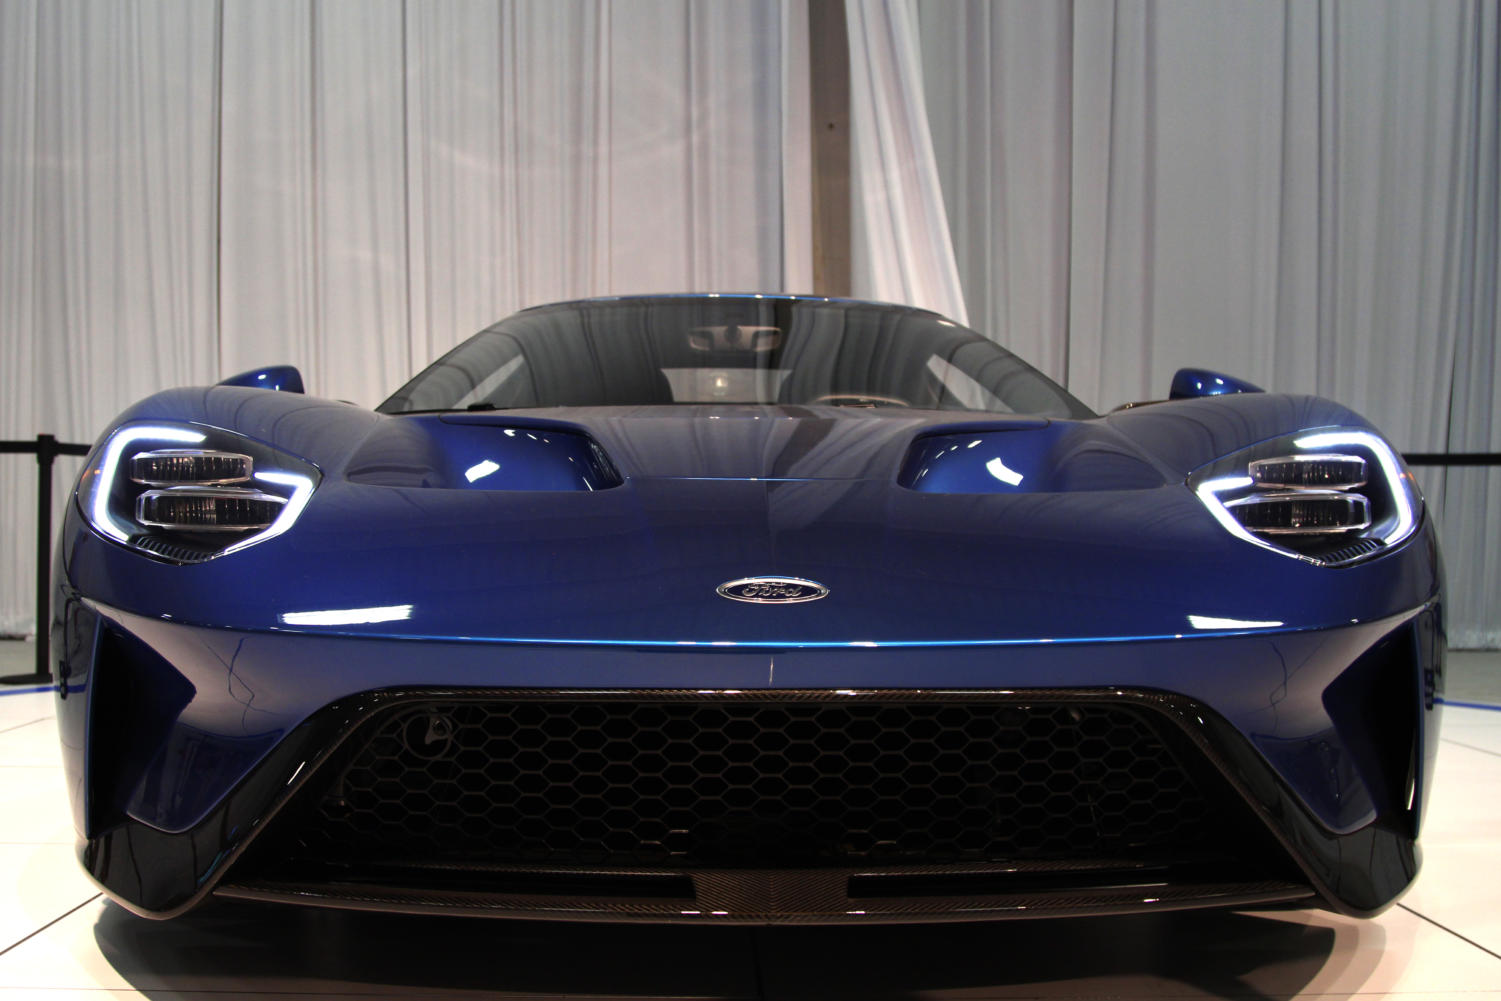 The+Ford+GT+is+one+of+the+first+cars+presented+as+fair-goers+walk+into+the+Texas+Auto+Show.